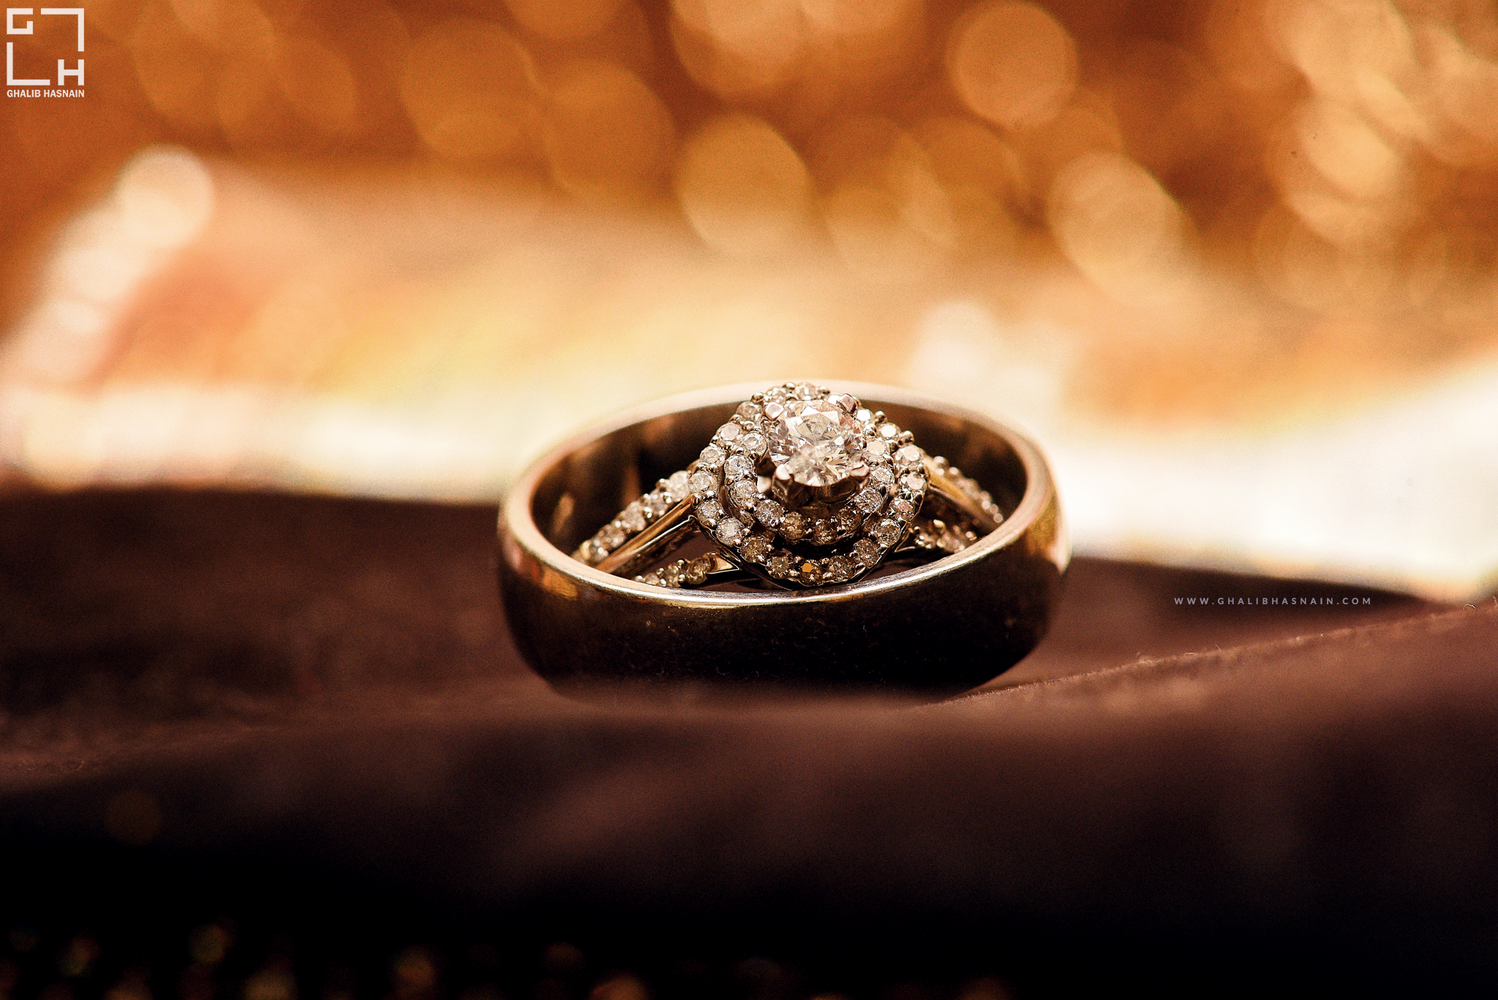 Wedding Rings by Ghalib Hasnain